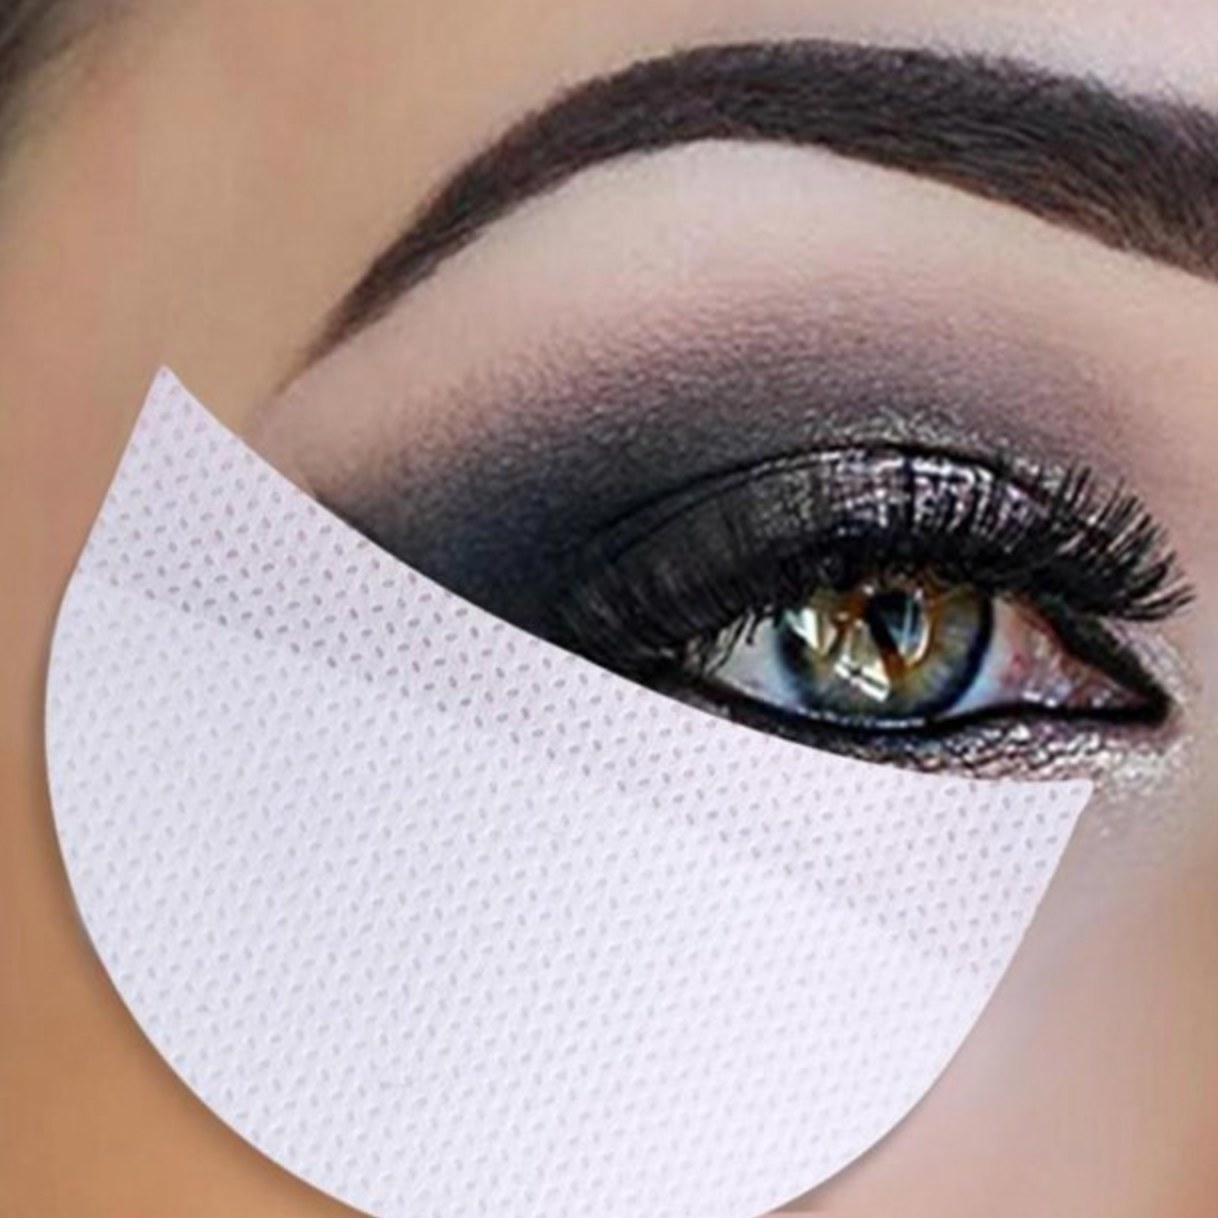 The undereye sticker makeup patch being used to catch makeup